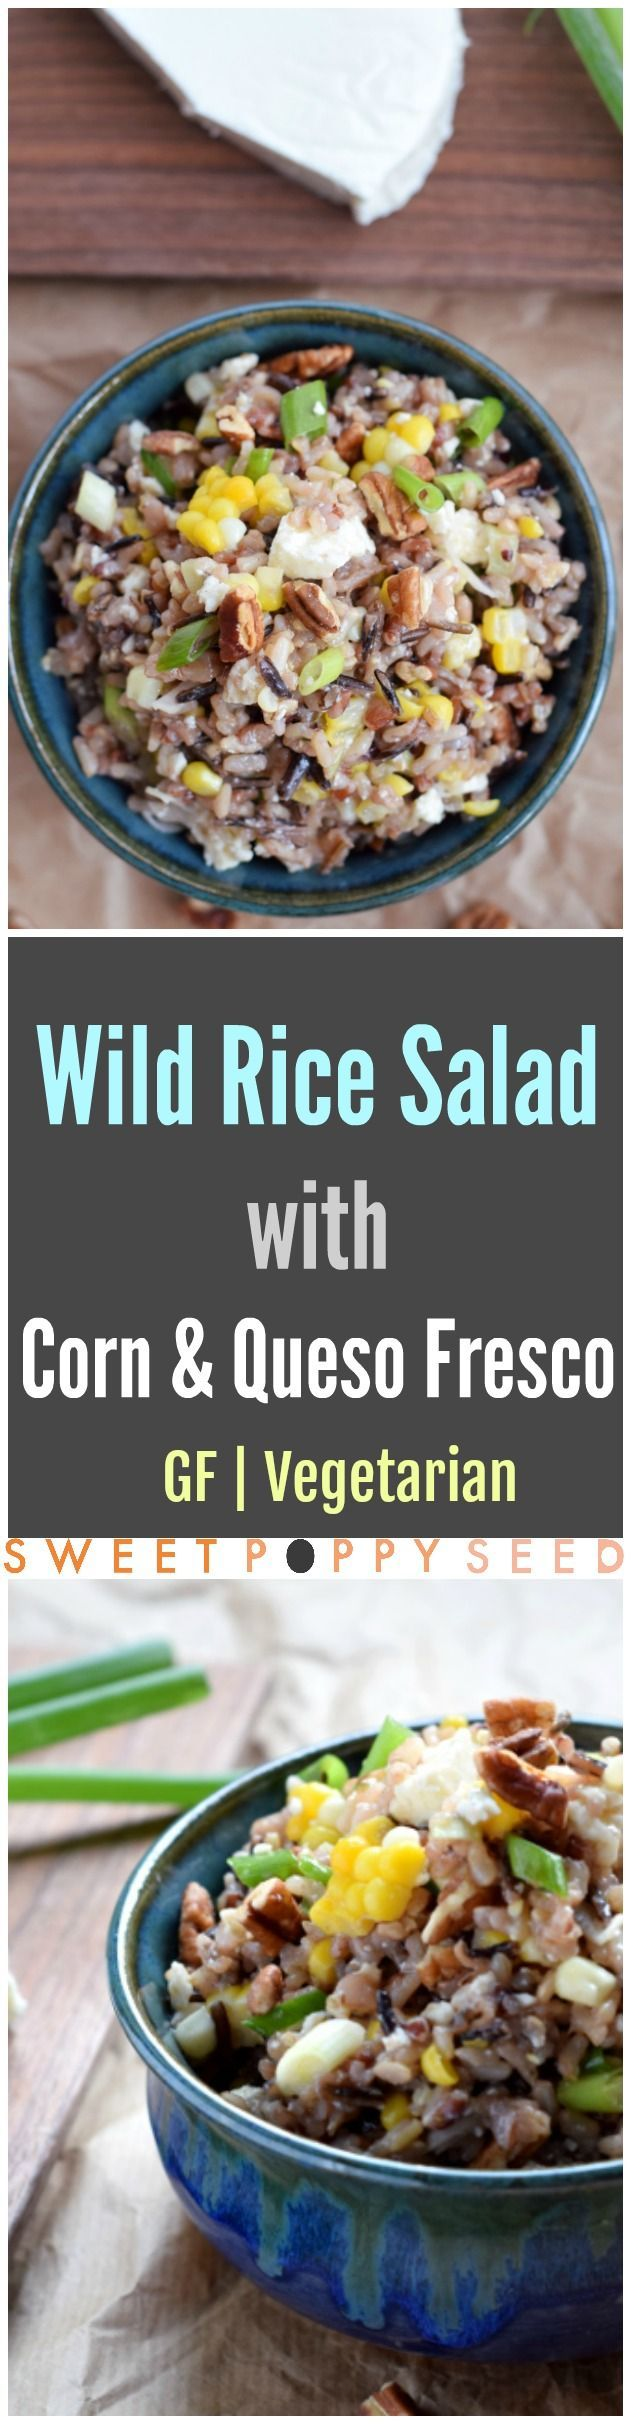 A delicious hearty salad side perfect for family weknight dinners or an easy lunch.